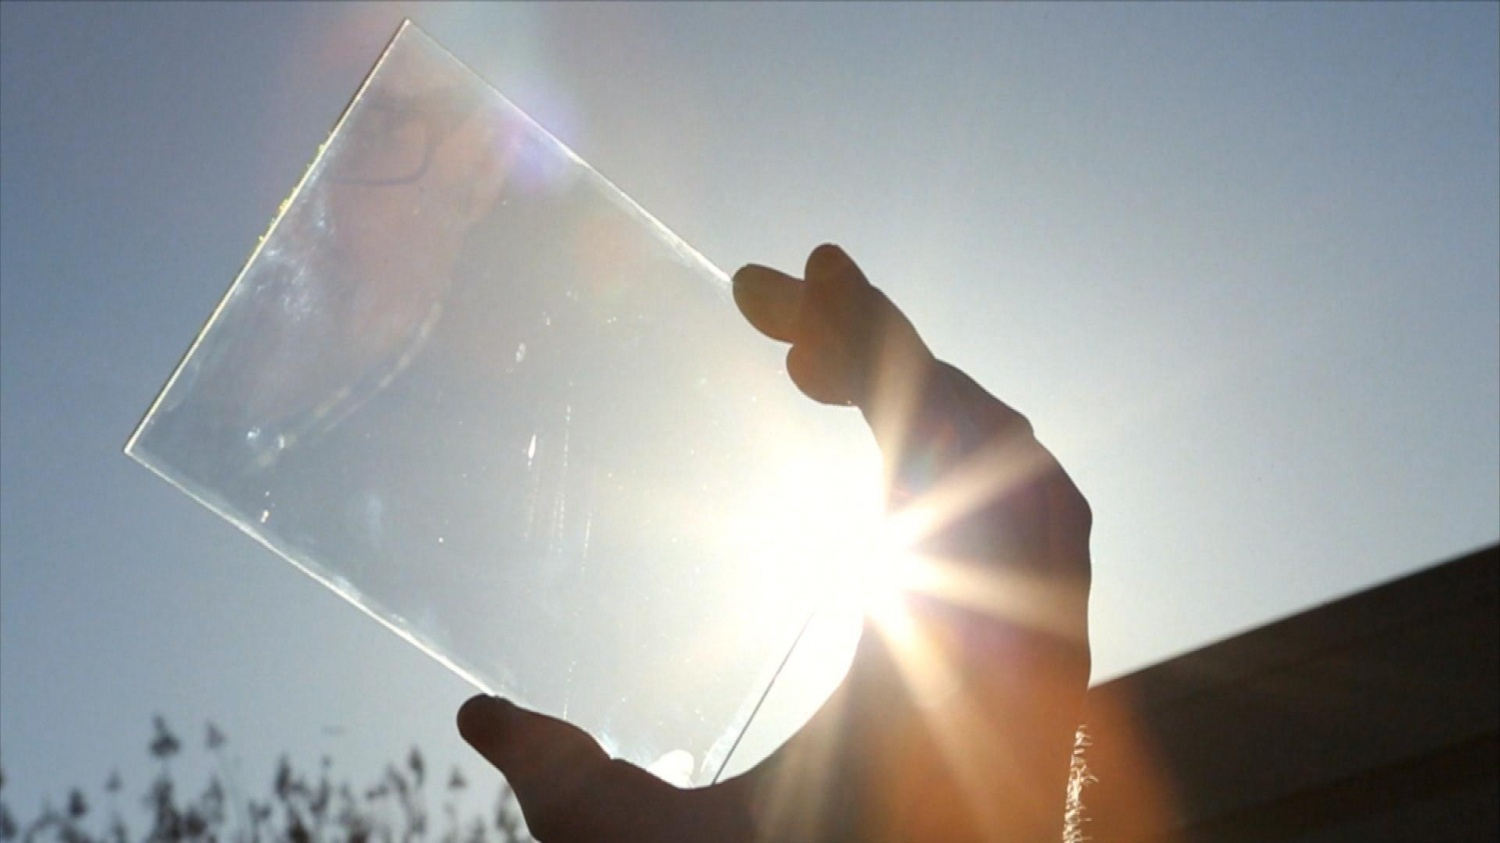 Invisible Solar panels in windows, buildings: Electricity of the Future